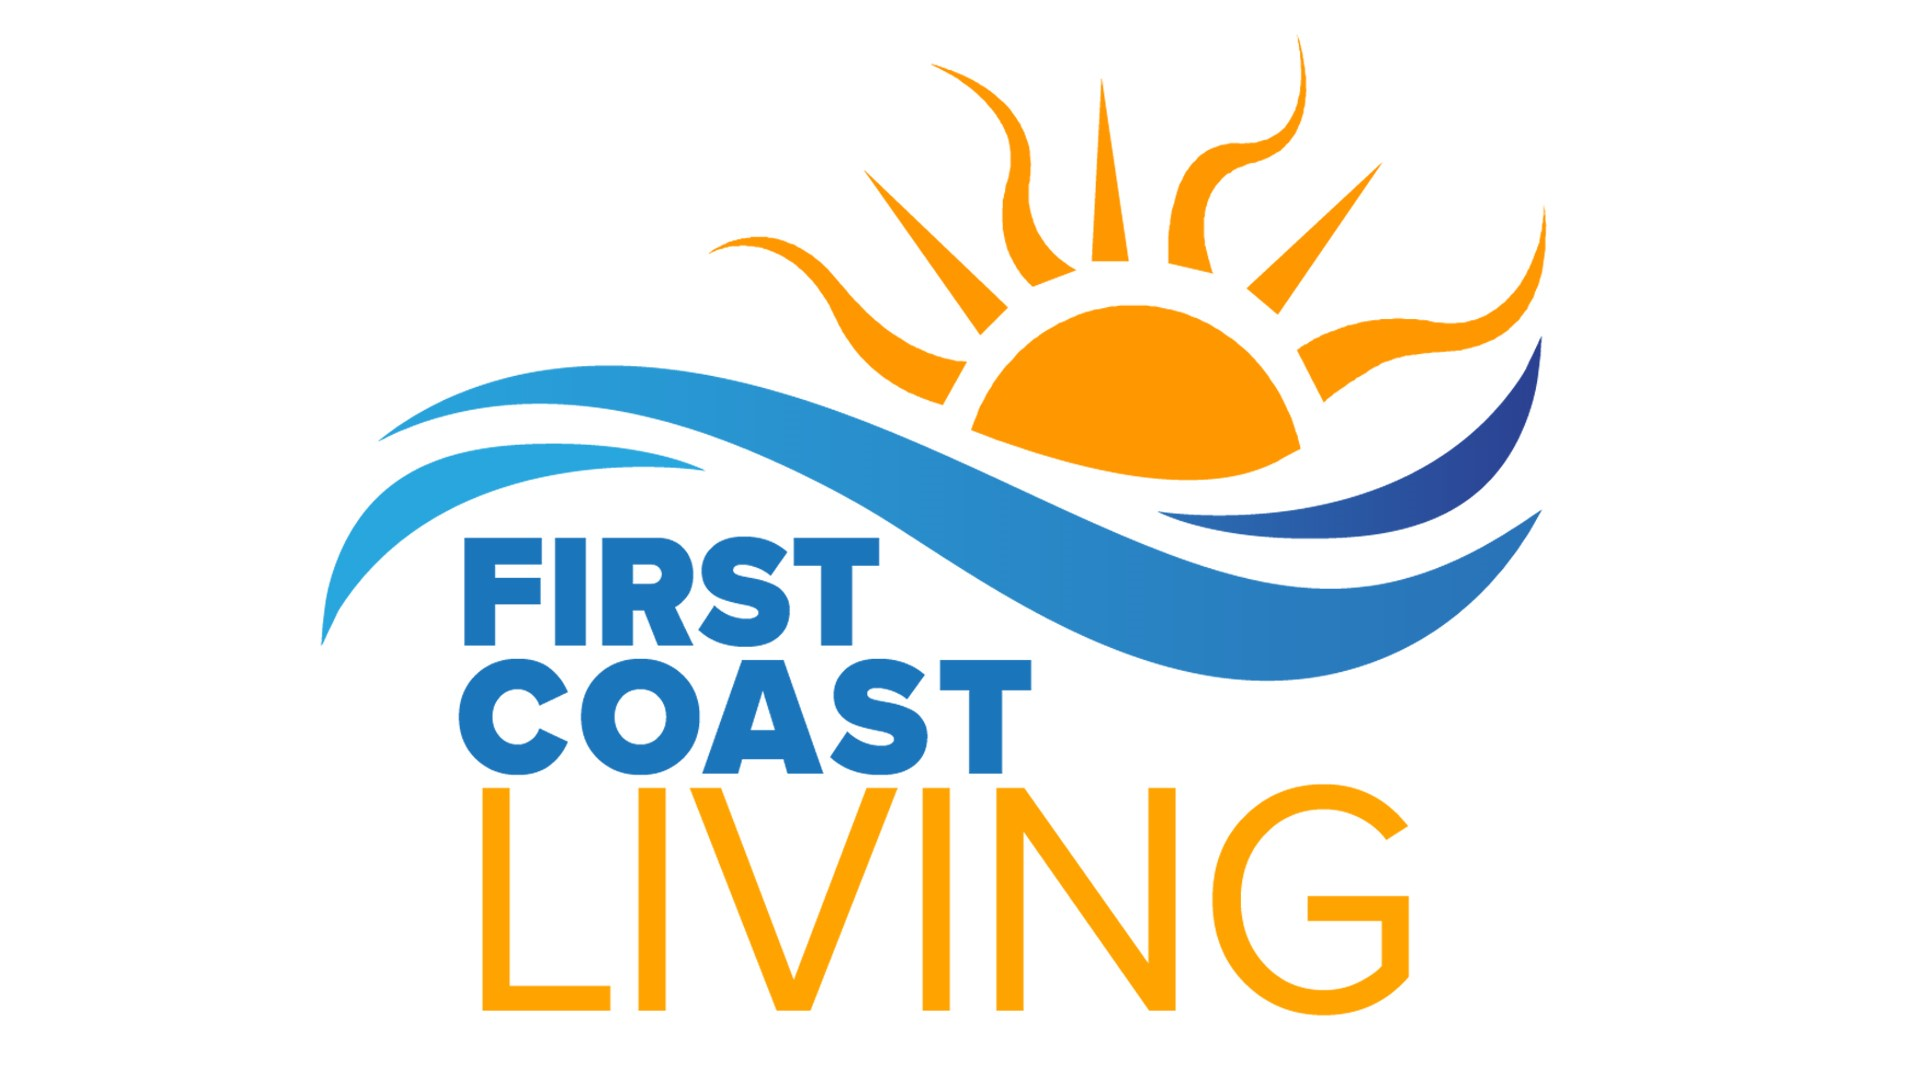 First Coast Living